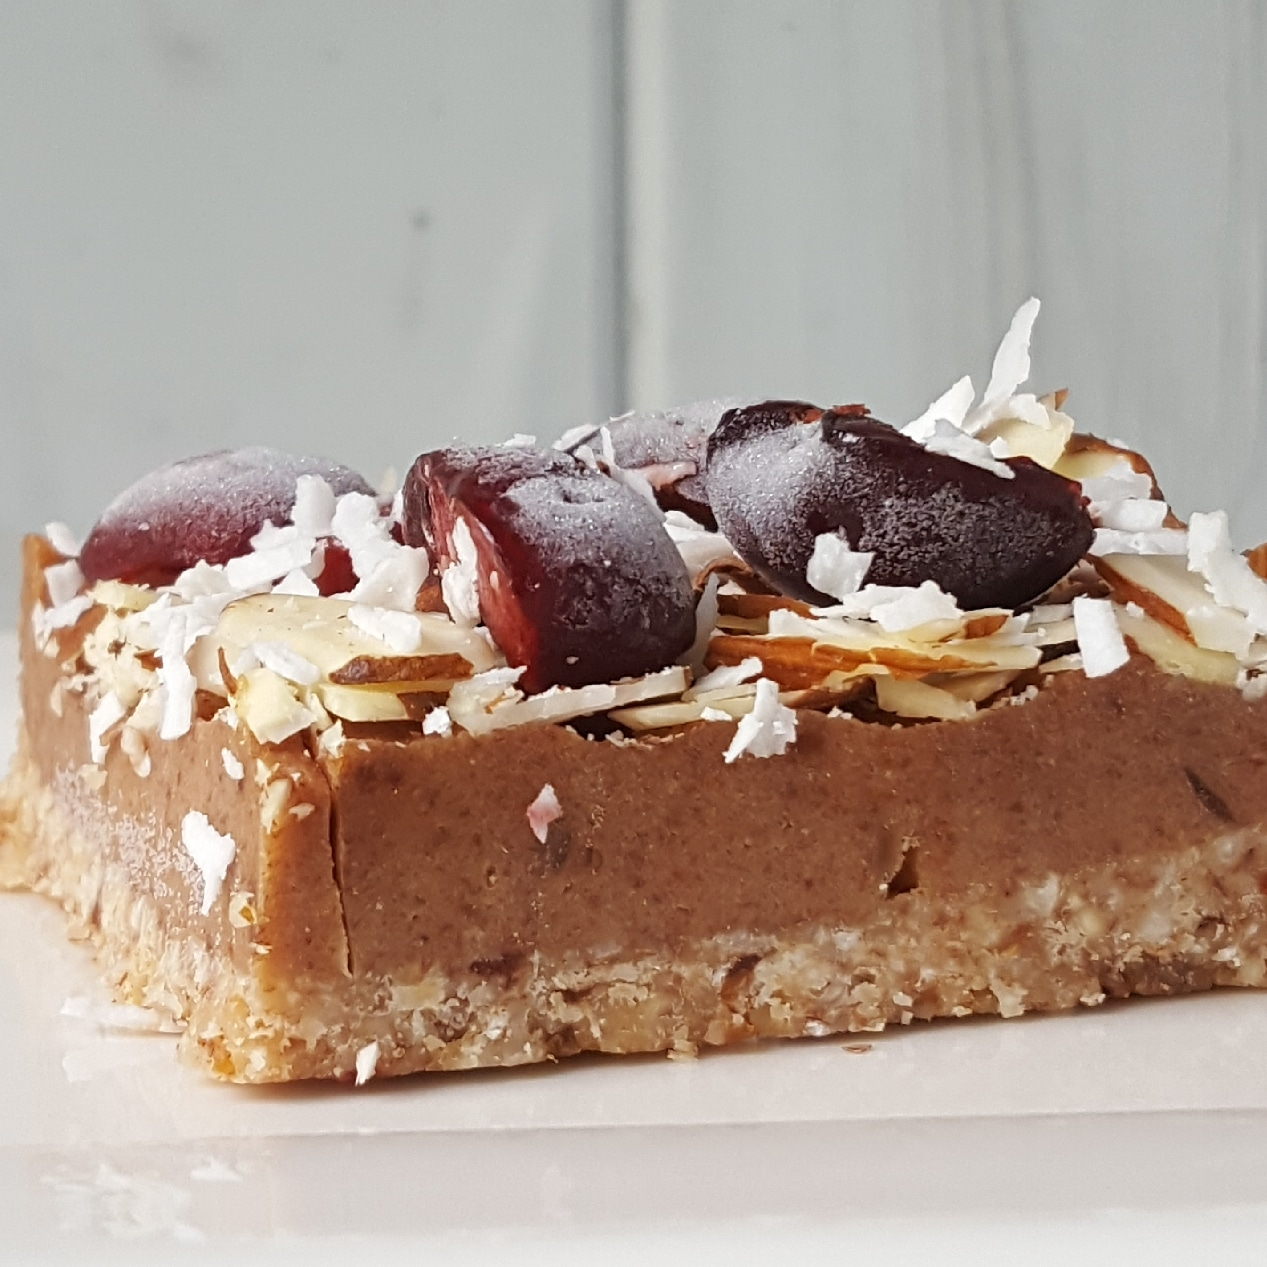 Almost Raw Cherry and Almond Butter Caramel Bars.jpg